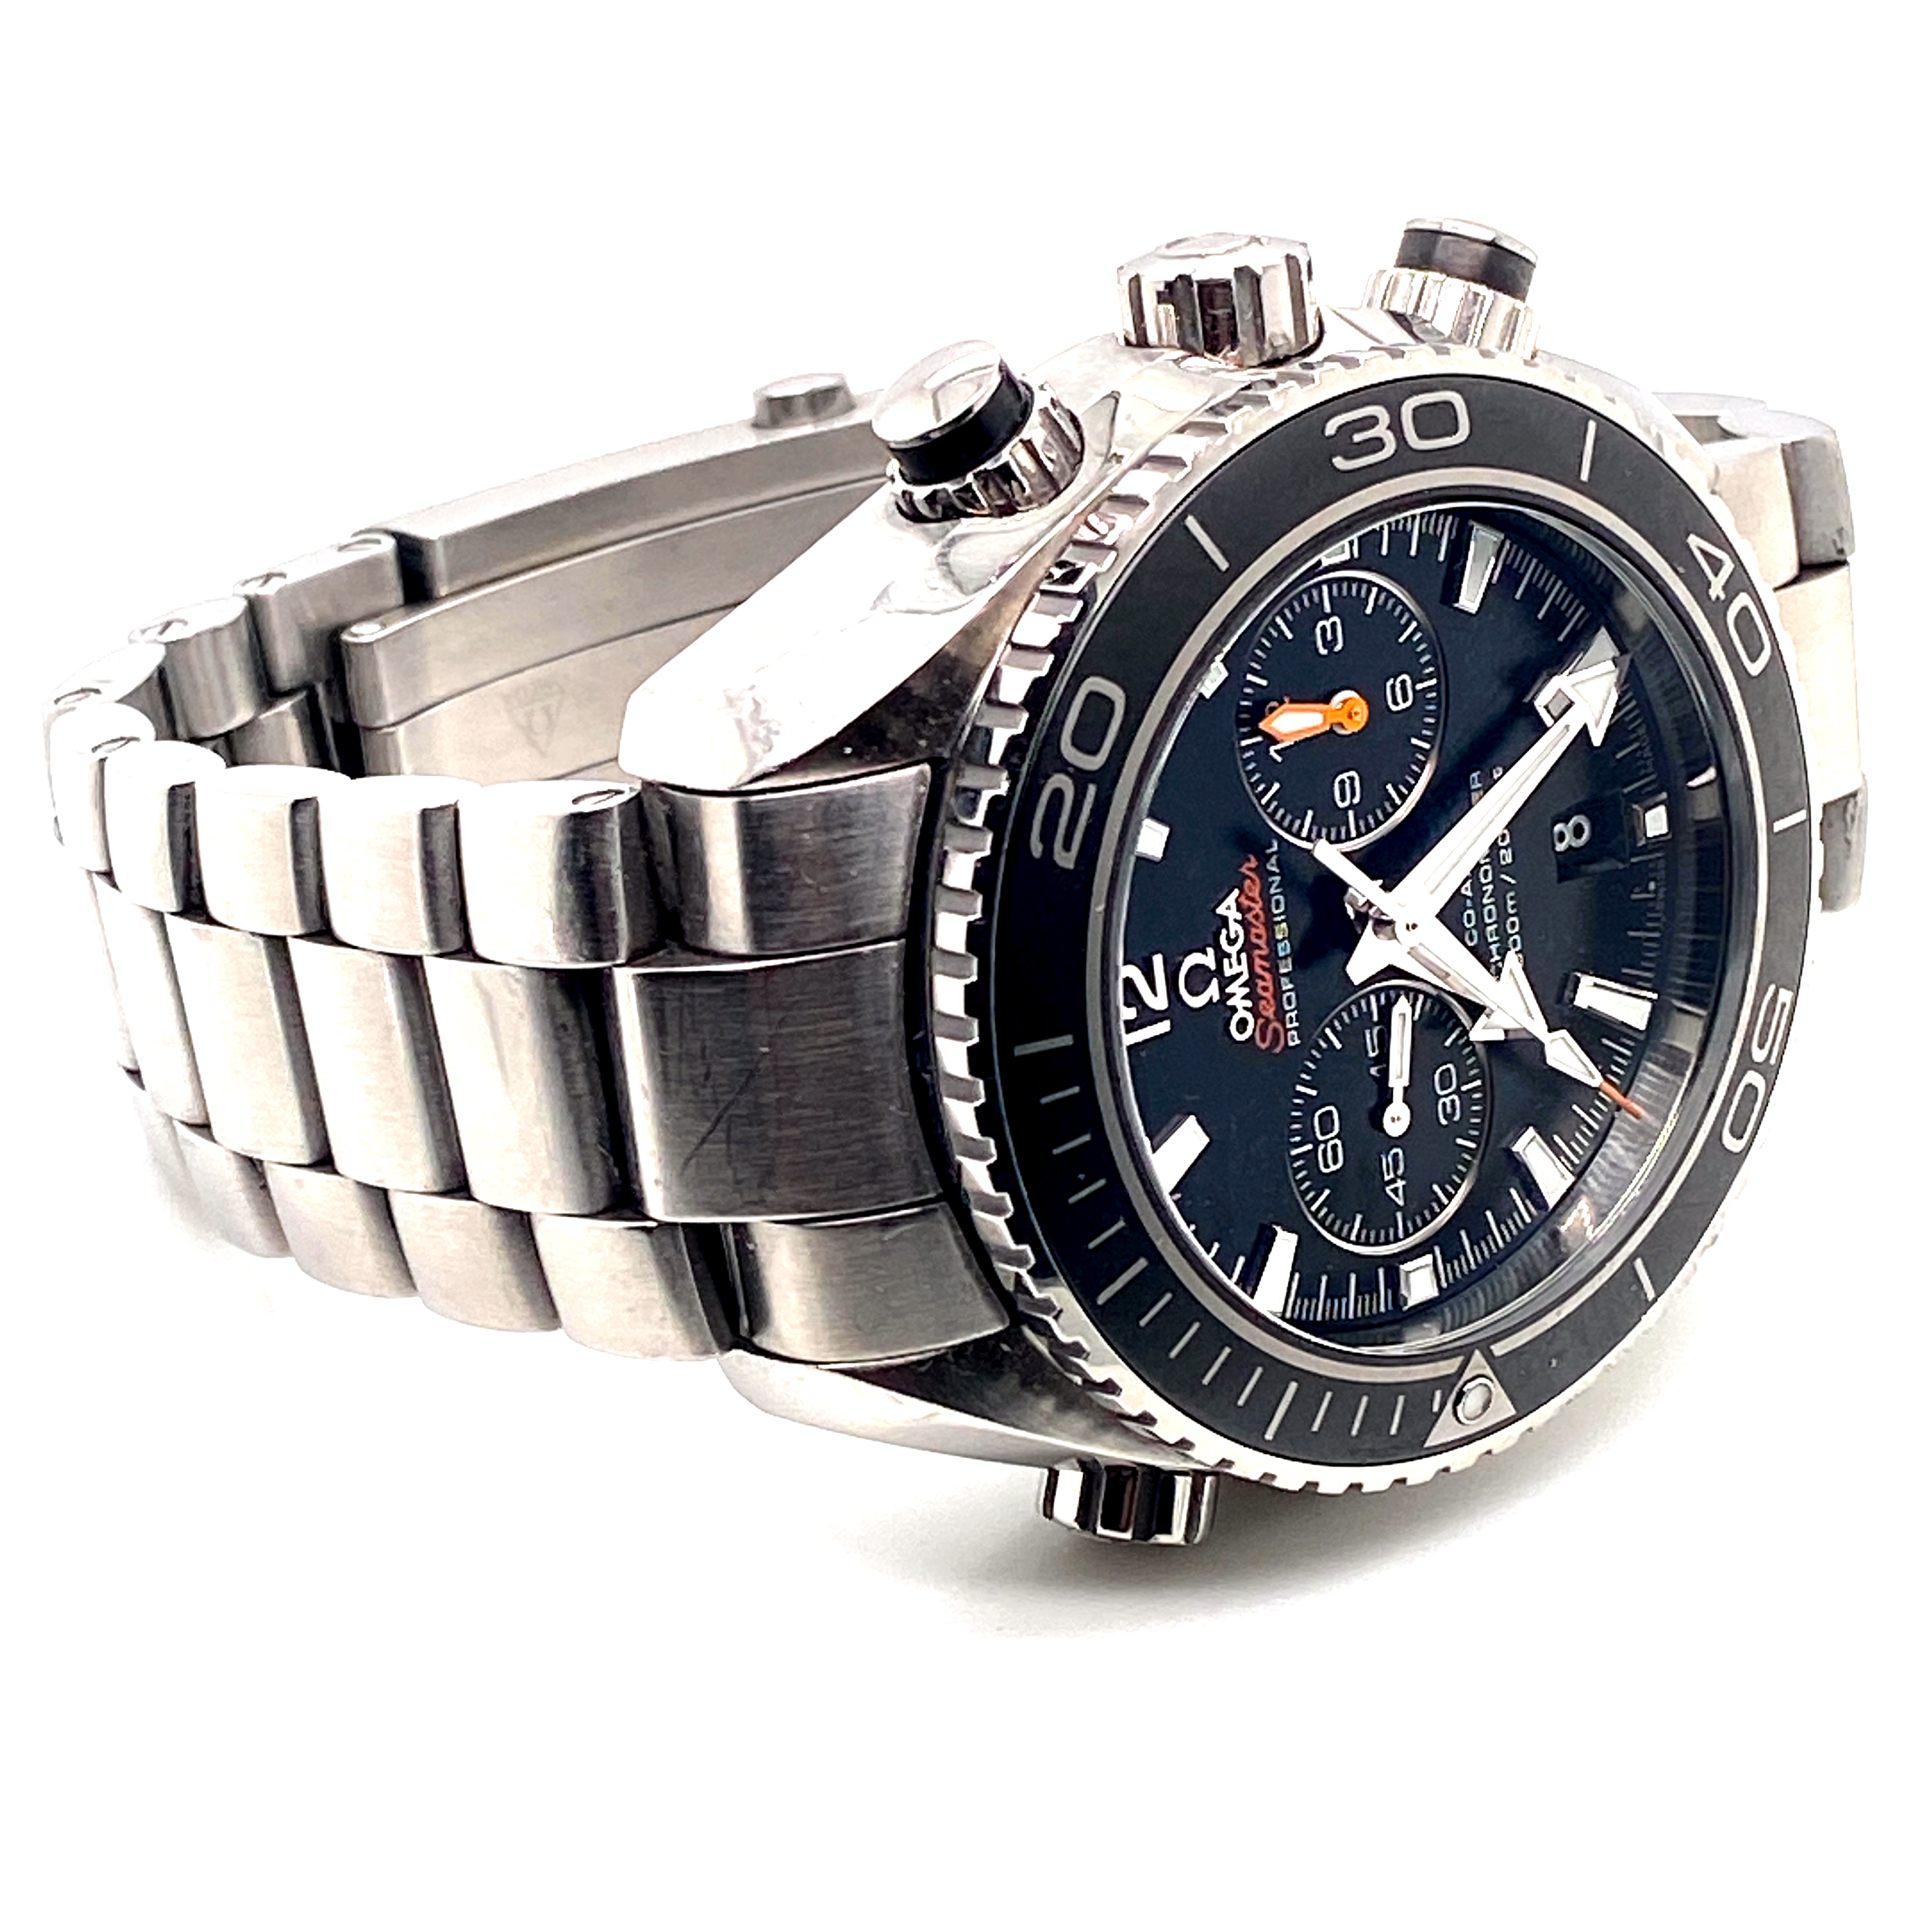 Lot 22 - Omega Seamaster Planet Ocean Chronograph Ref 23230455101001